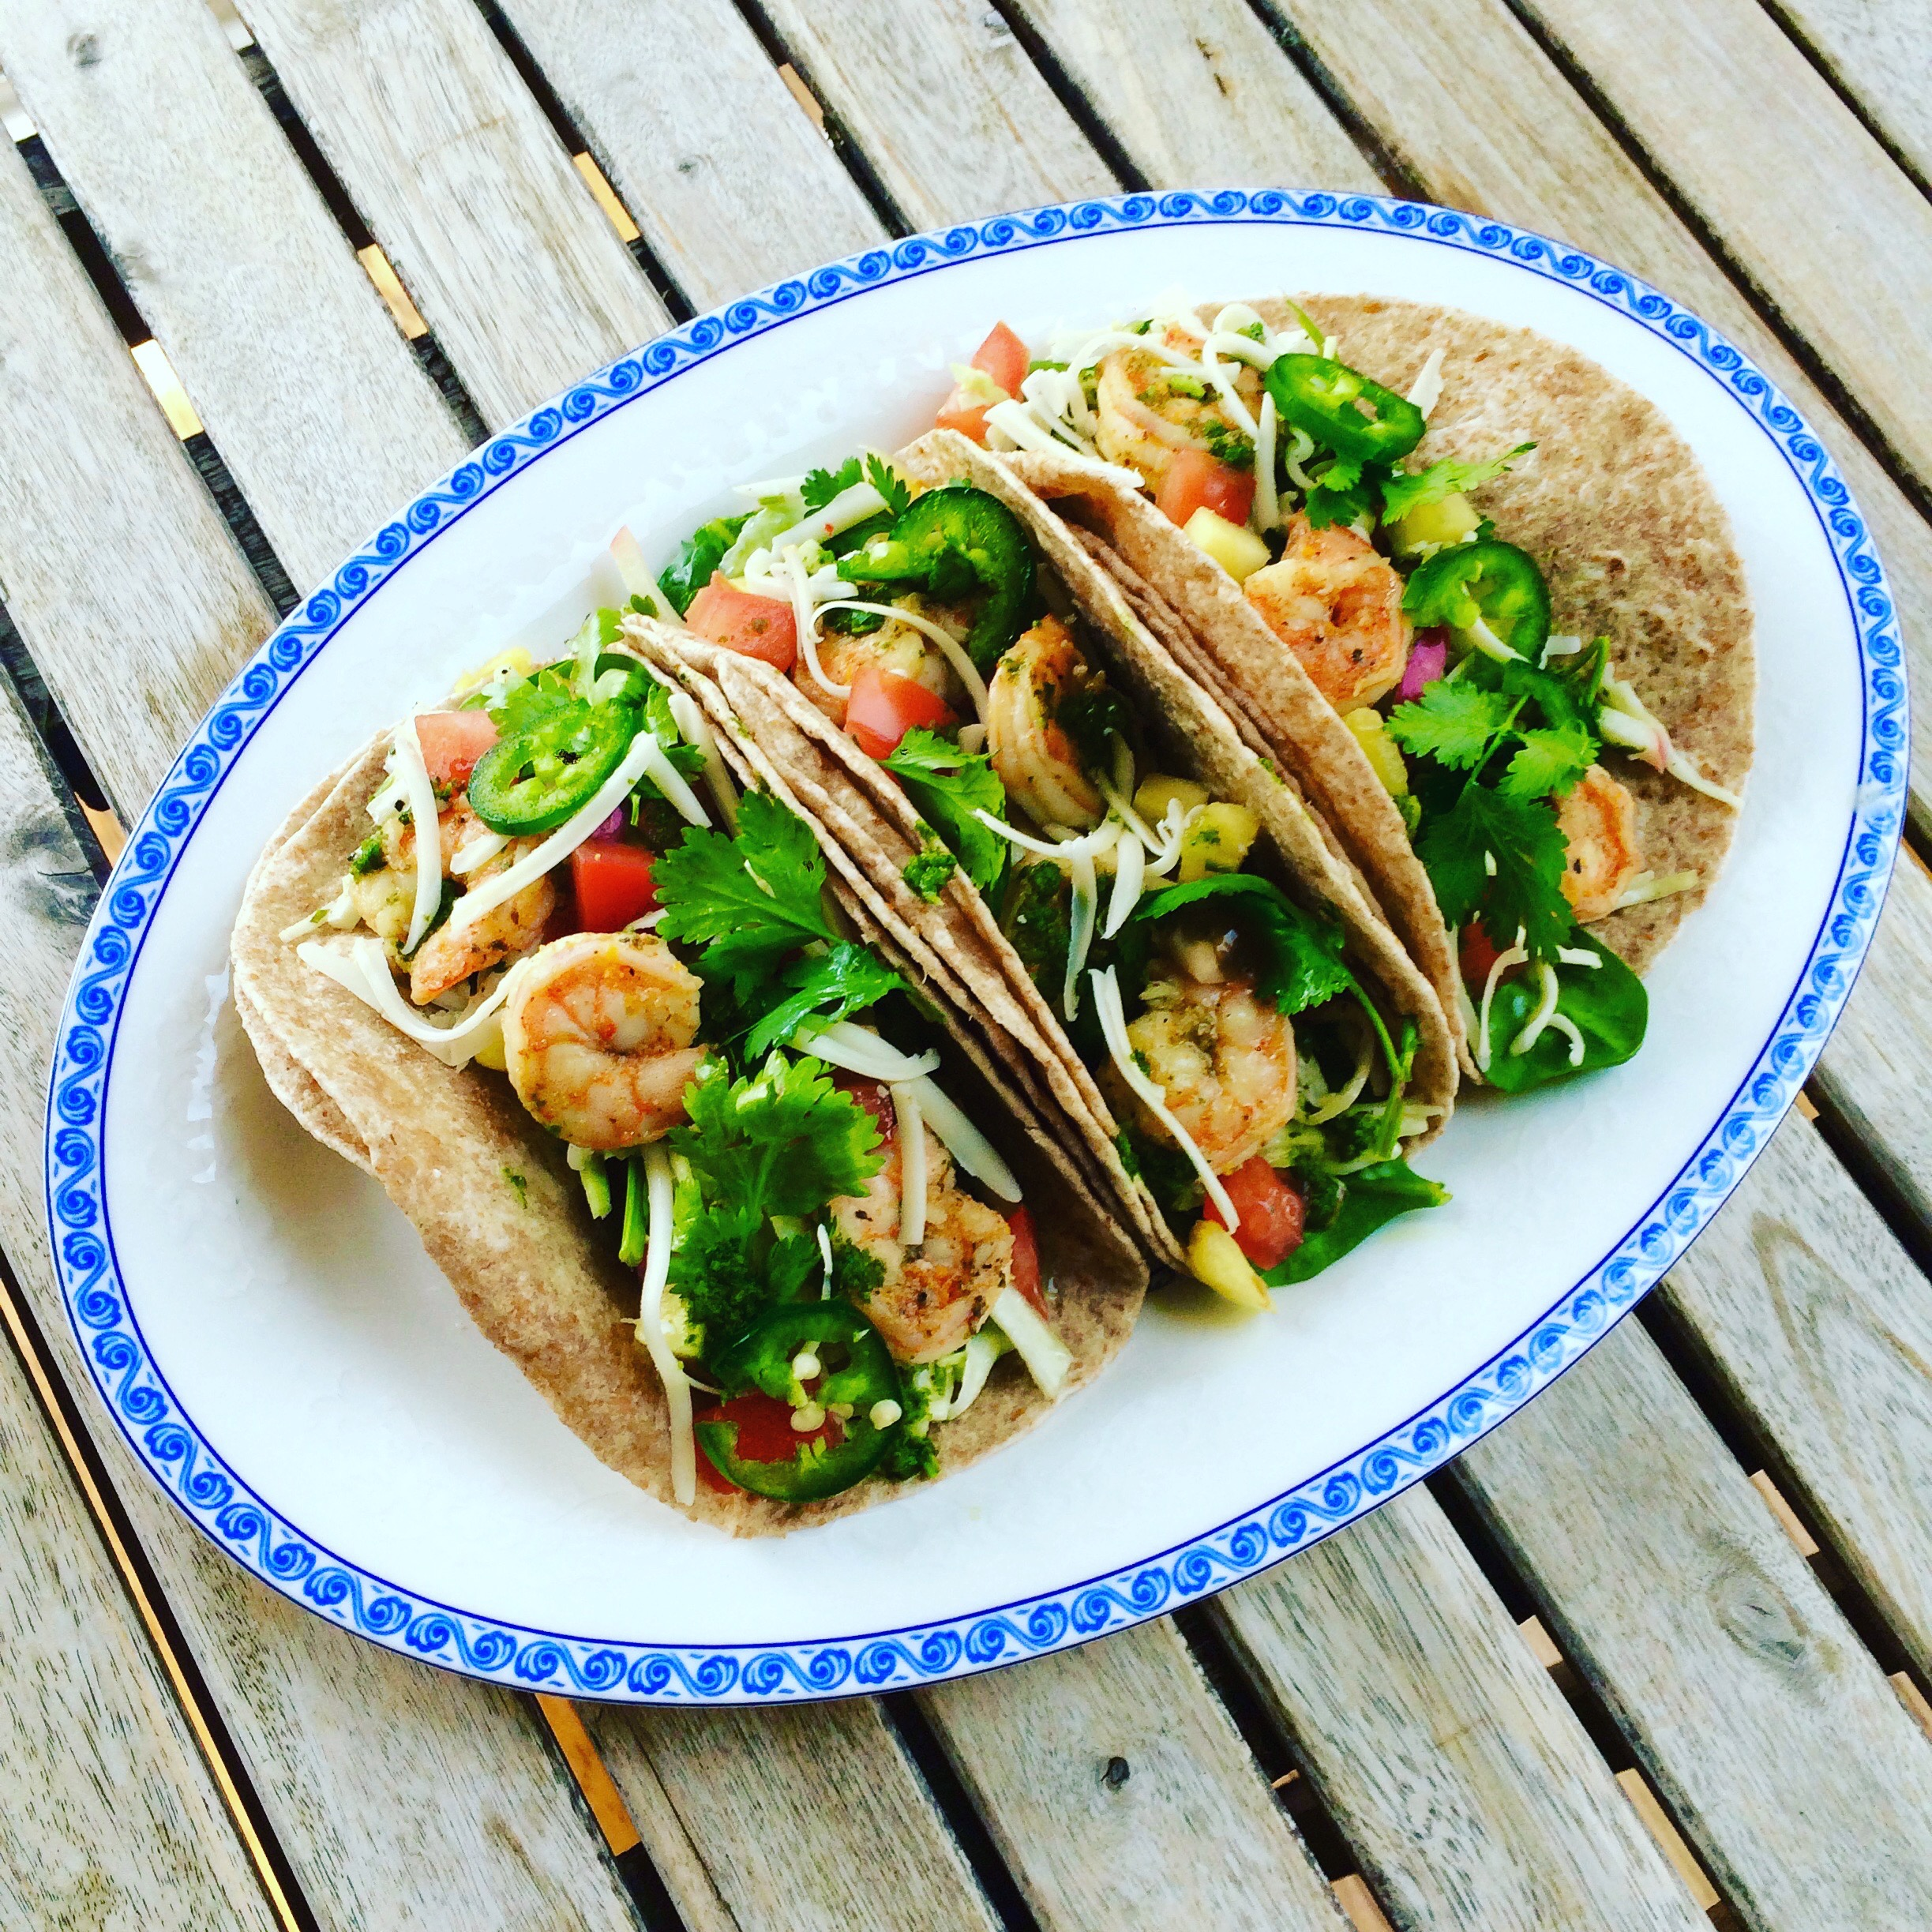 Tequila Shrimp Tacos with Apple Slaw & Cilantro Sauce